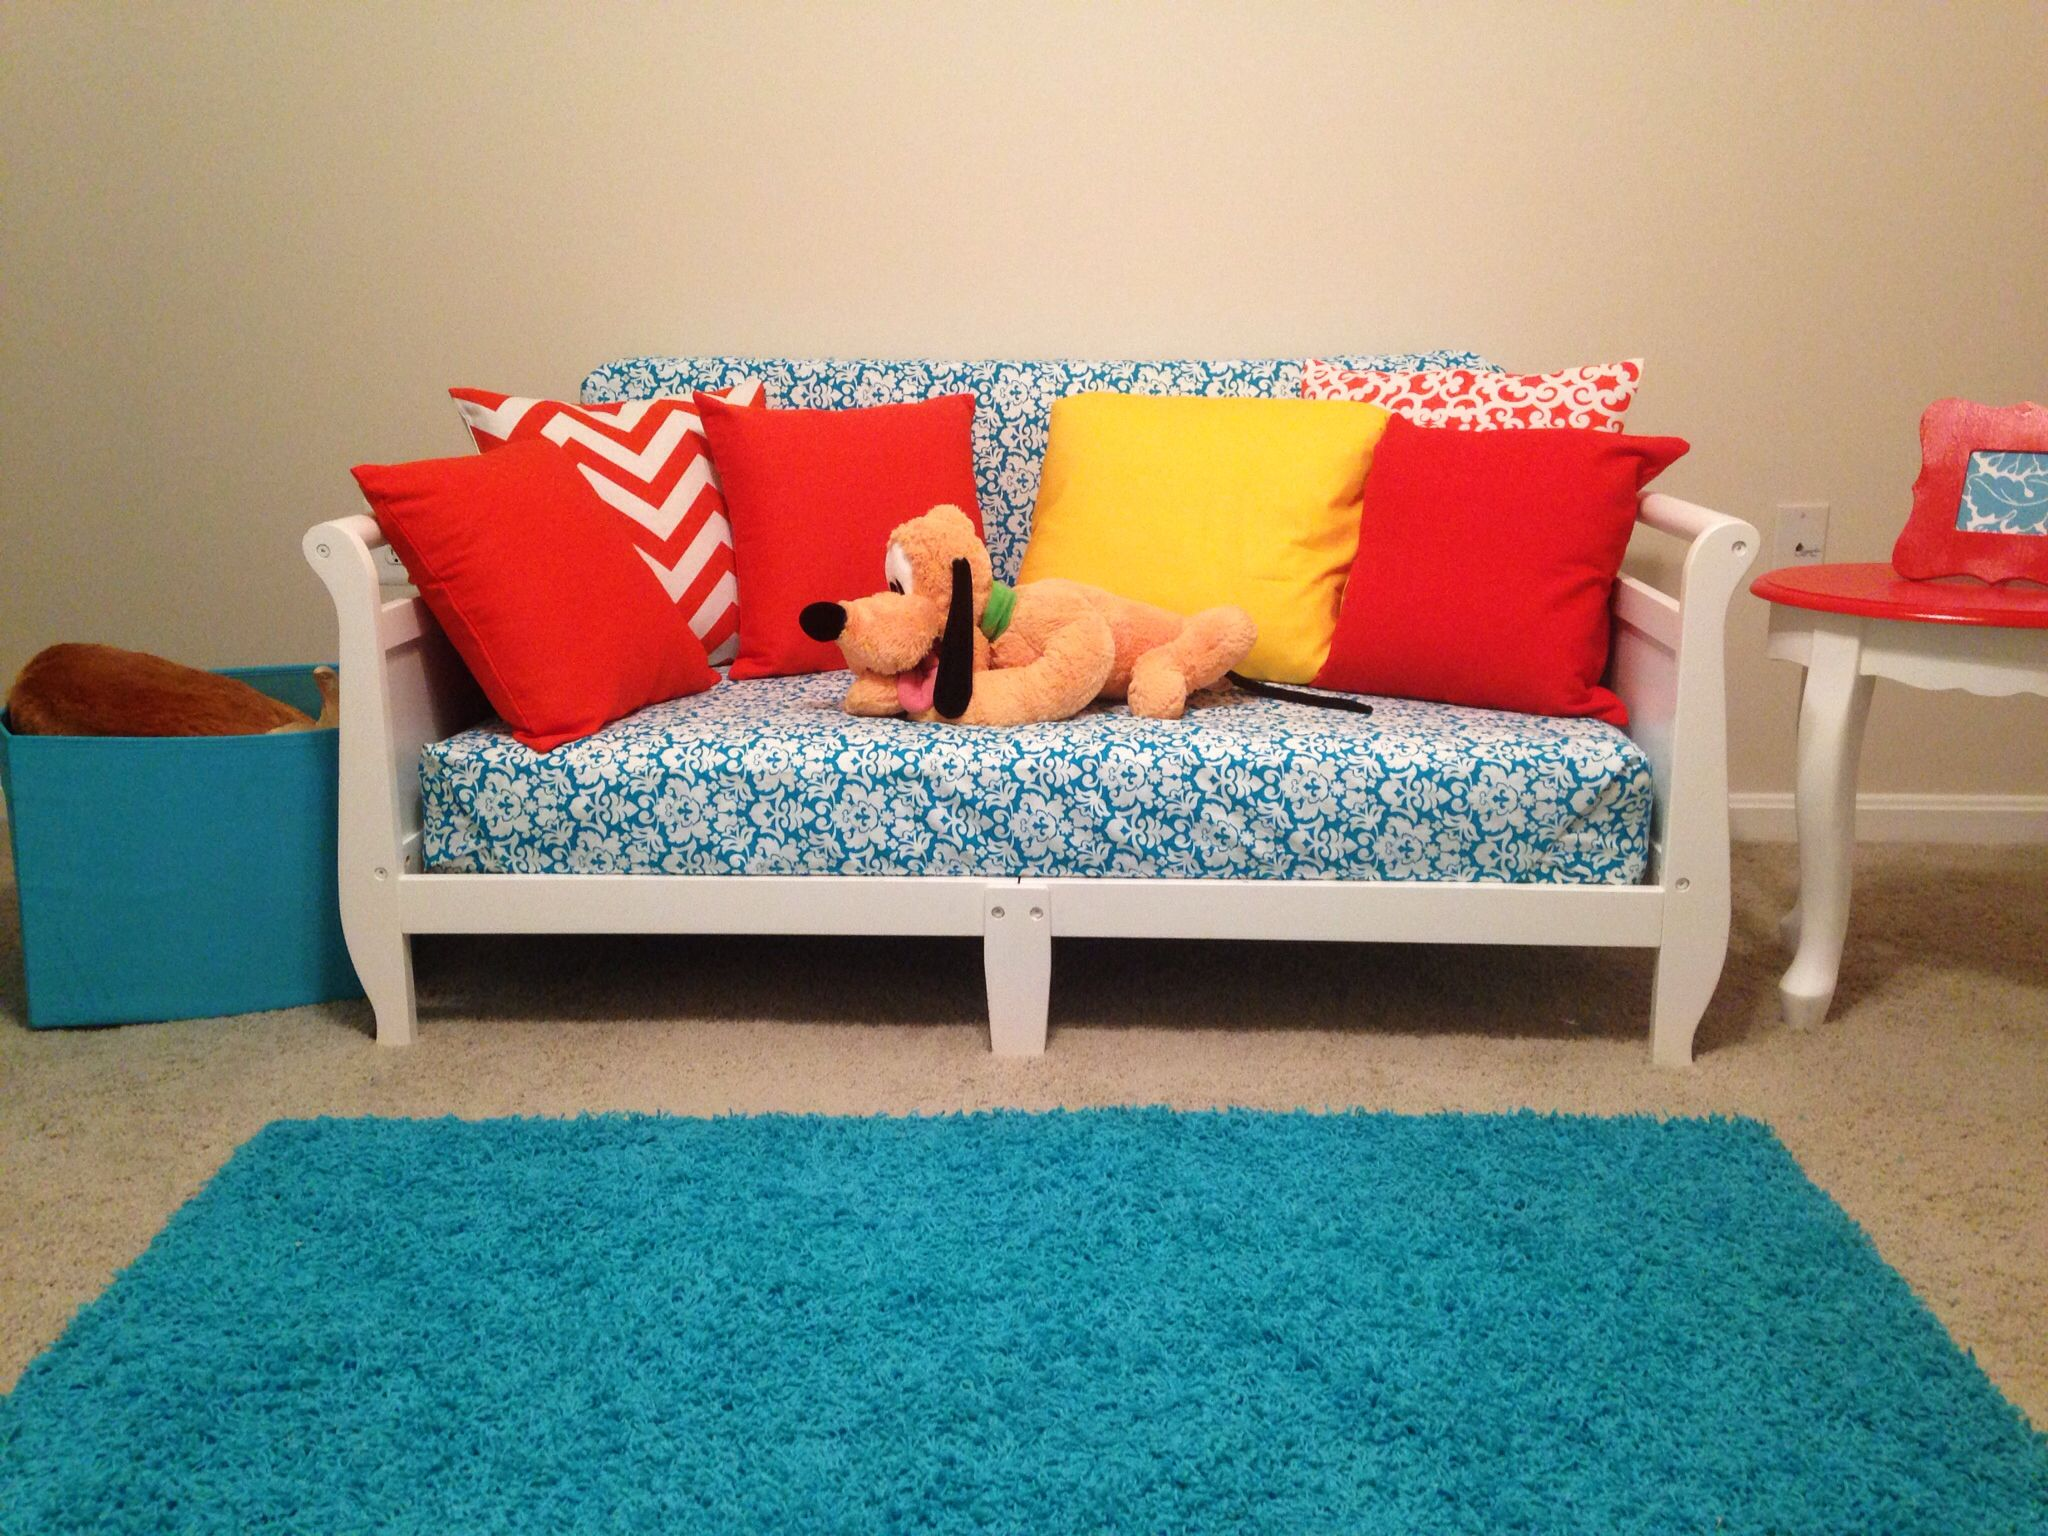 Upcycling Playroom sofa from Toddler Beds